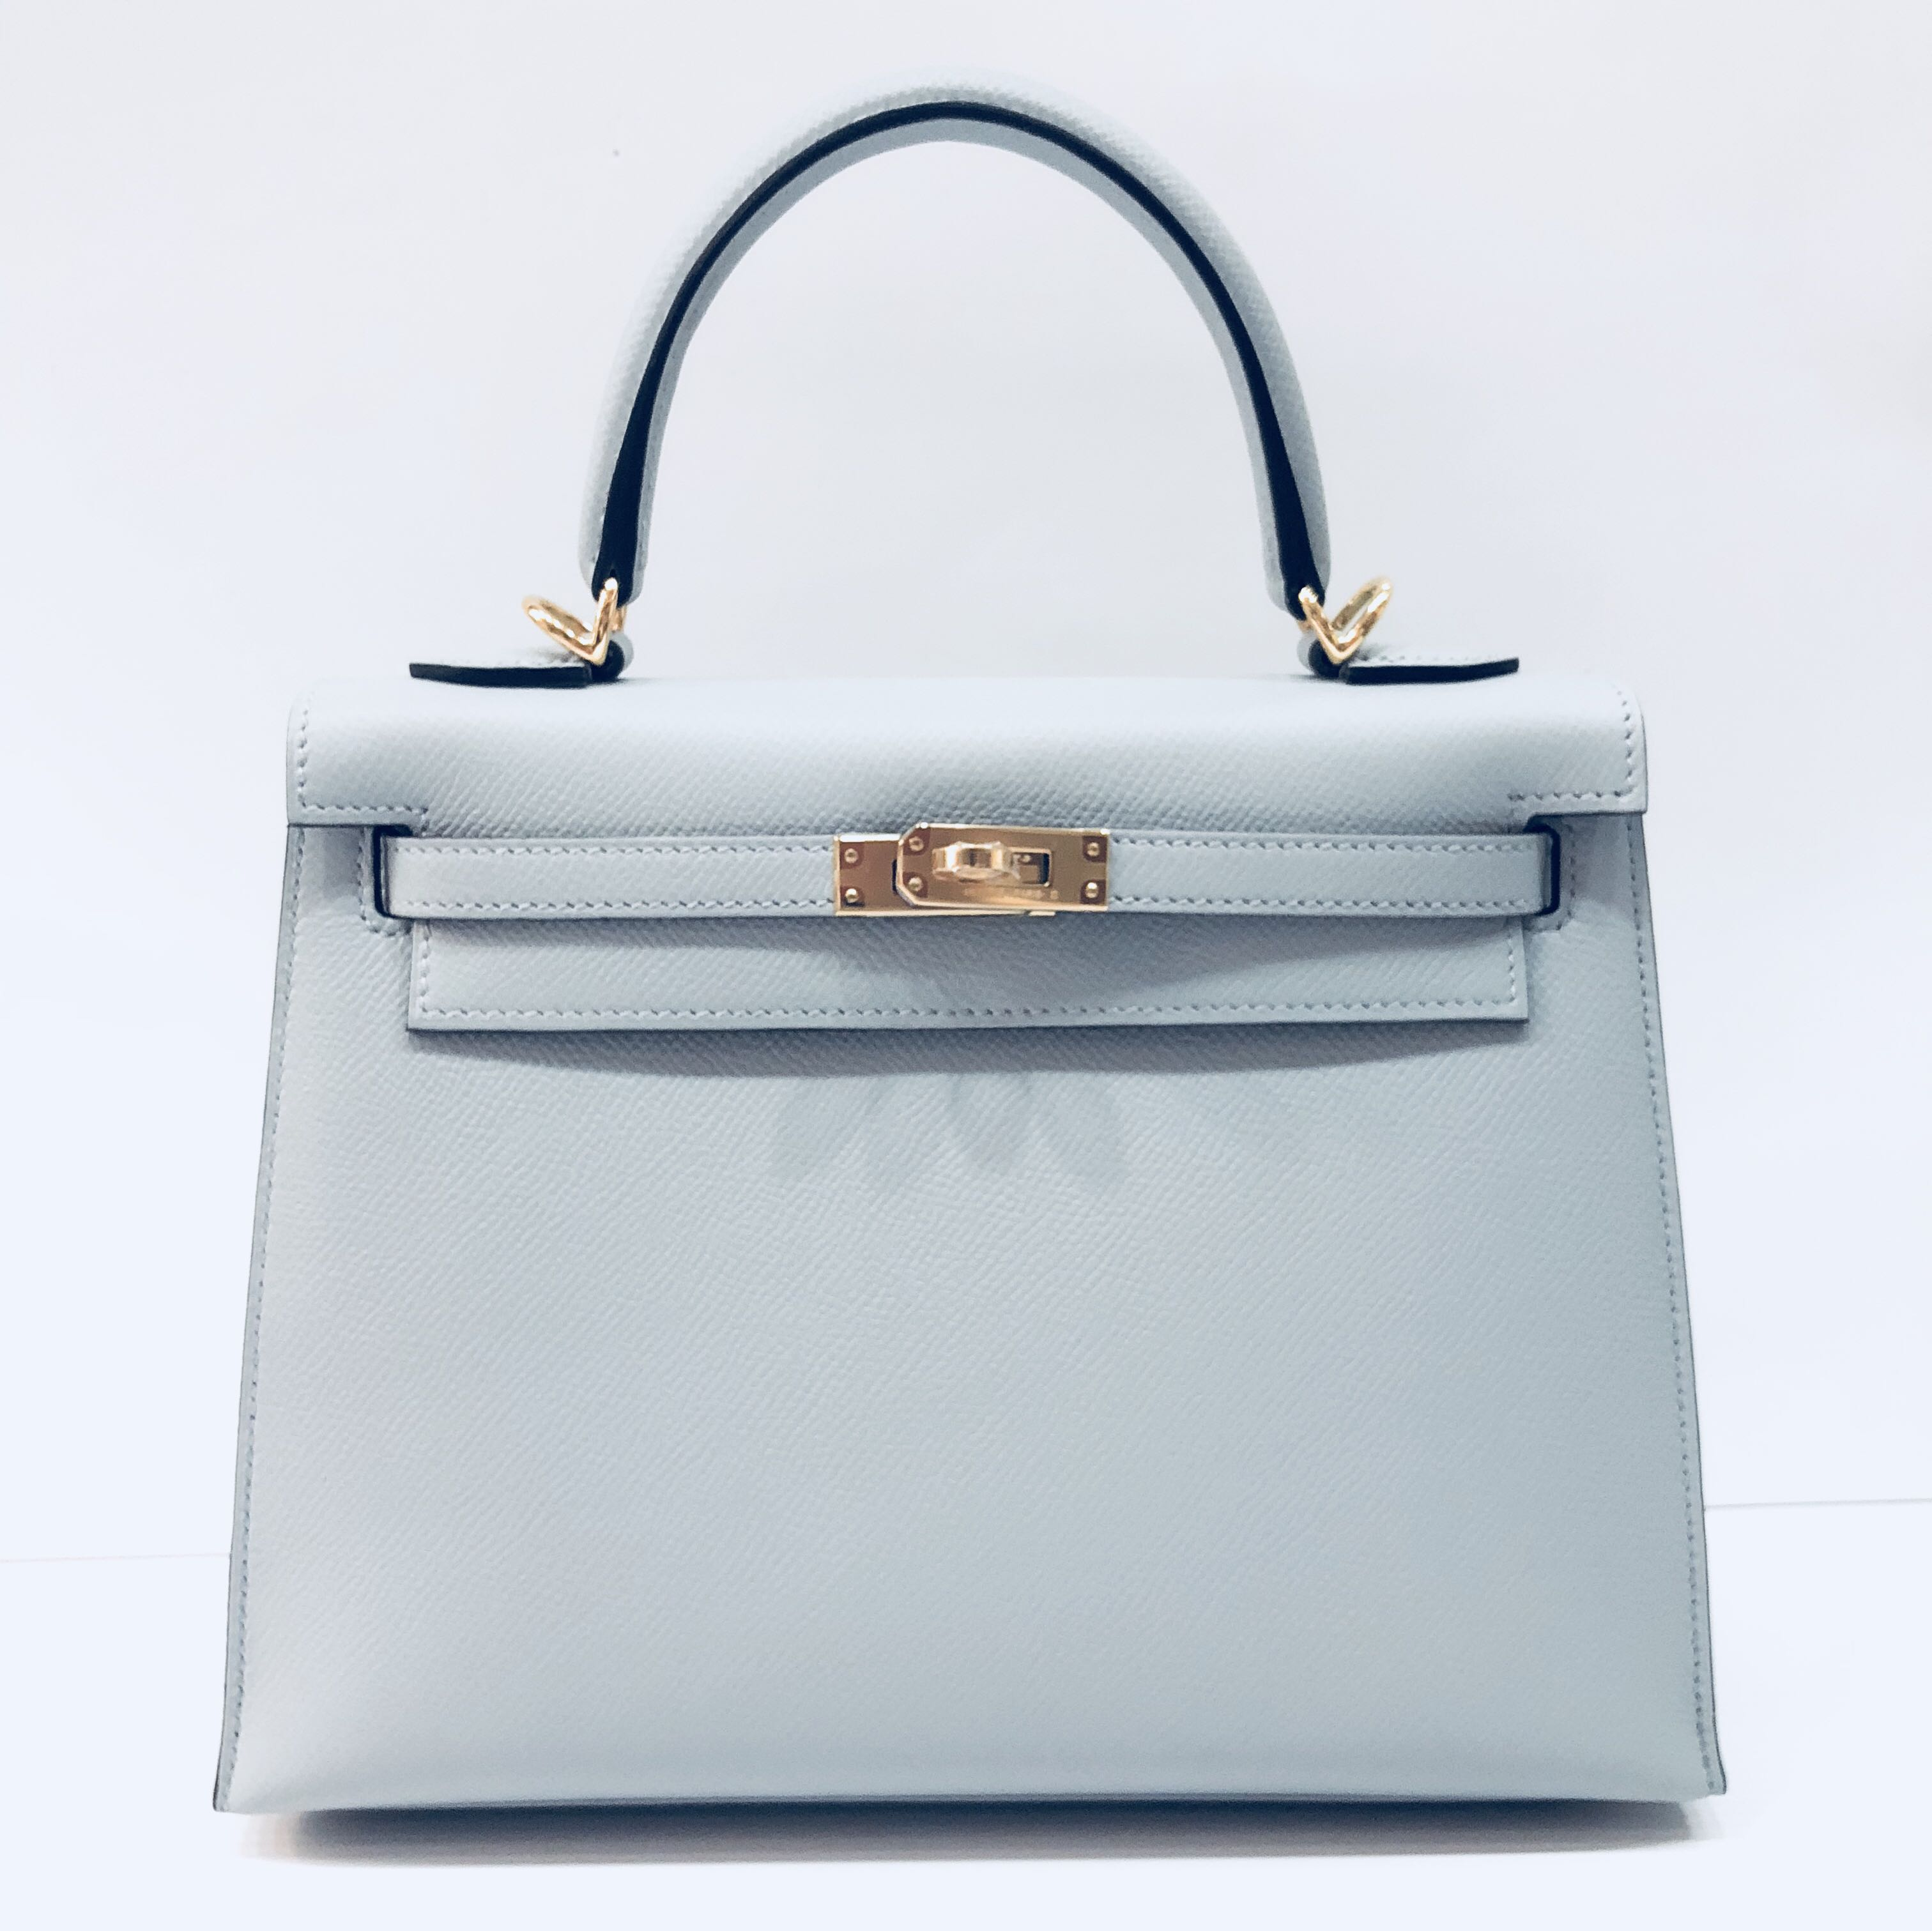 1d44d6576eac Hermes - Blue Glacier Kelly 25 Sellier in Veau Epsom with GHW ...